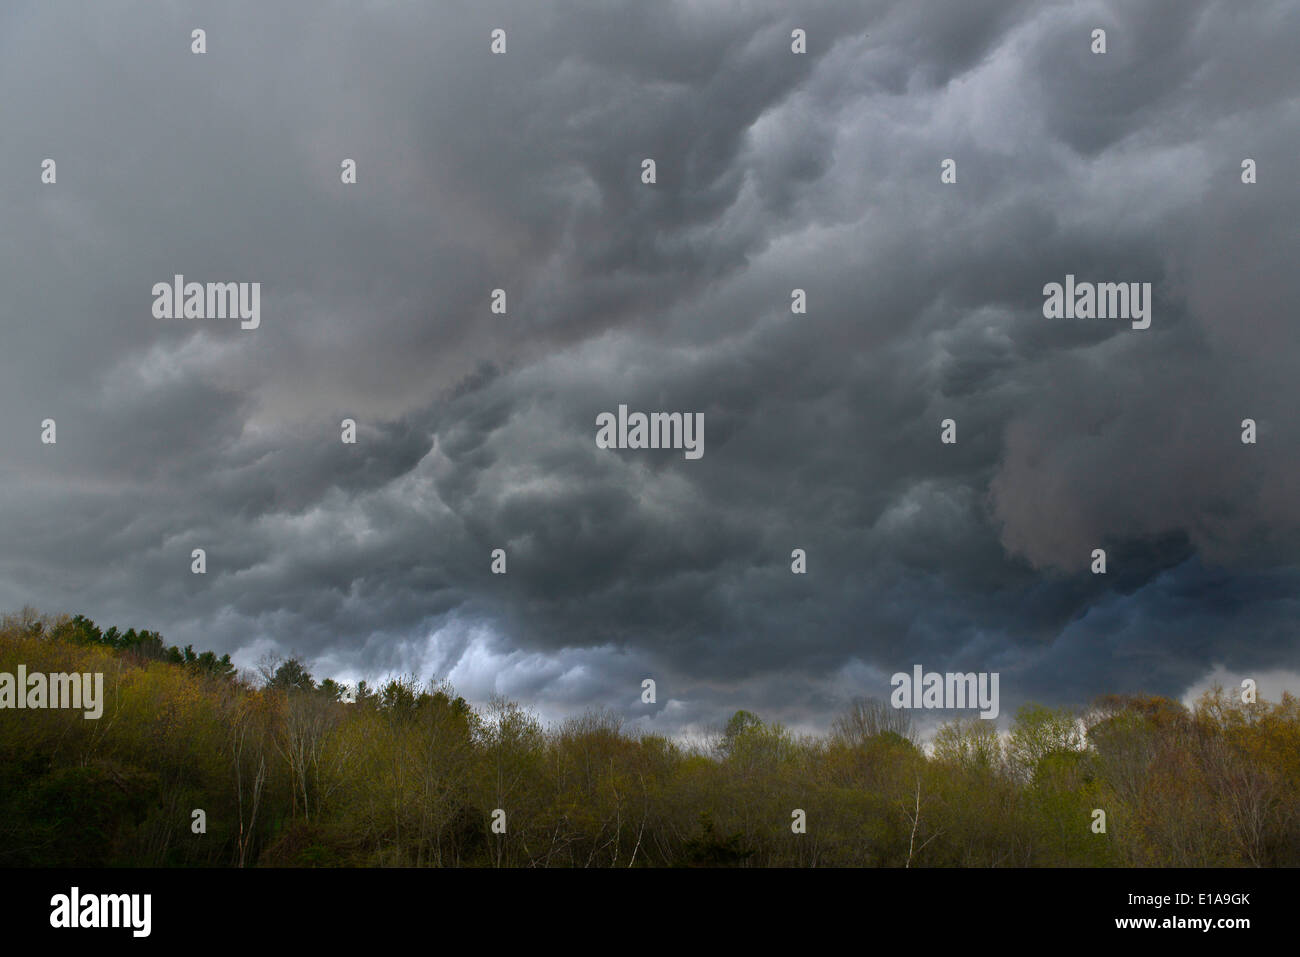 Cumulonimbus torm clouds gather above trees in Southbury, Connecticut. - Stock Image